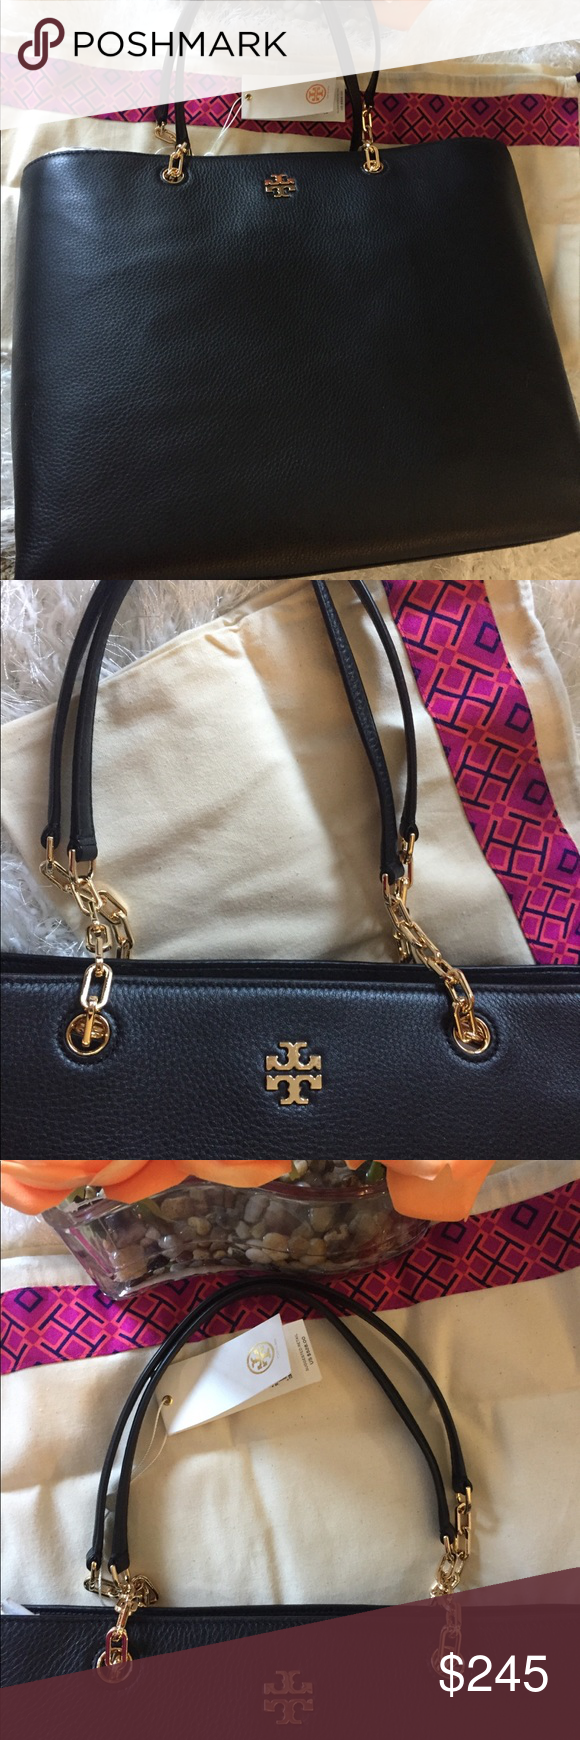 9f69bc38b75 🆕🎱TORY BURCH TOTE🎱 The Frida Tote in black pebbled soft luxurious leather